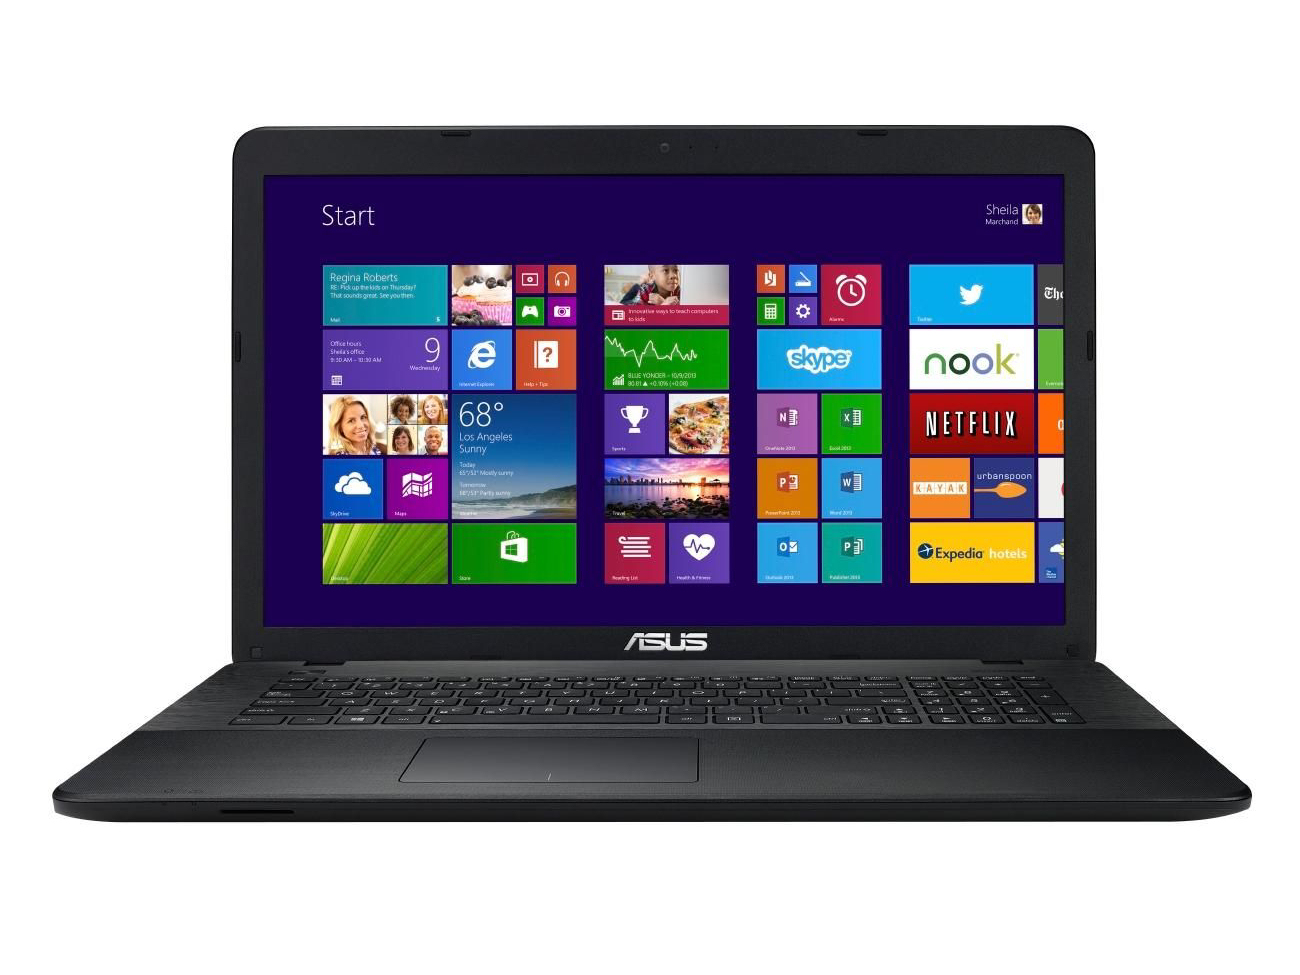 ASUS X751SJ LAPTOP DRIVER FOR WINDOWS 8